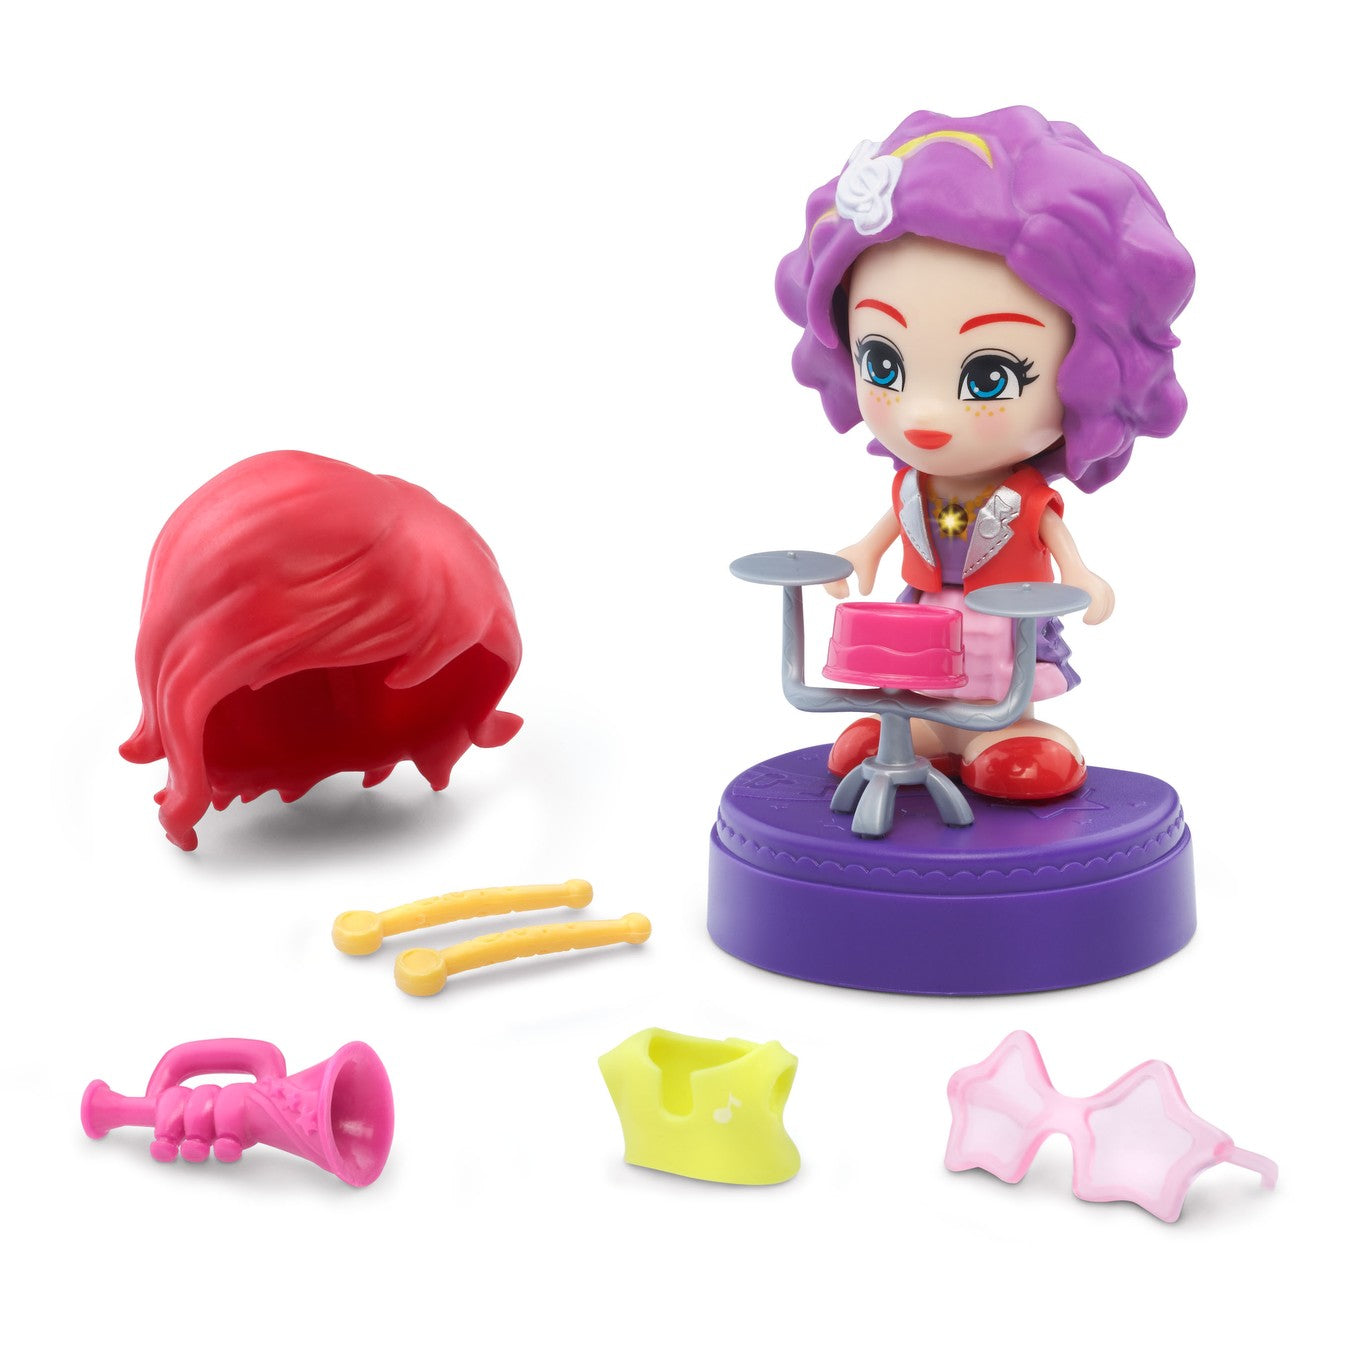 Vtech Flipsies Jazz & Her Drum Toy Set For Kids-NA9663